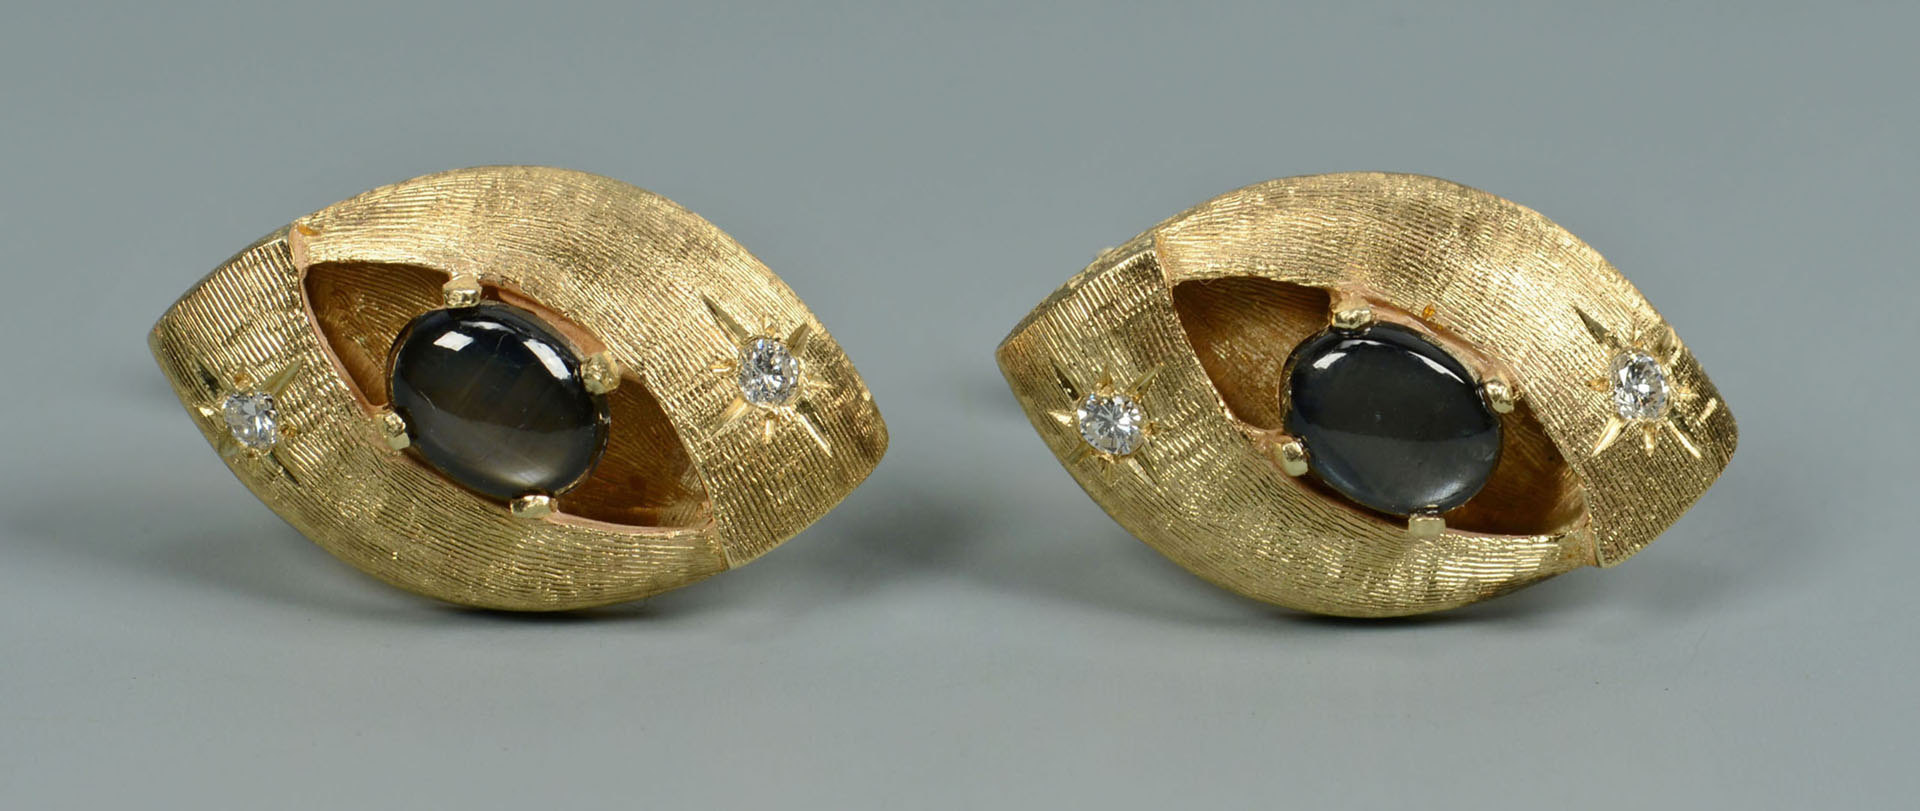 Lot 293: Grouping of 10K & 14K Gold Men's Jewelry, 4 items